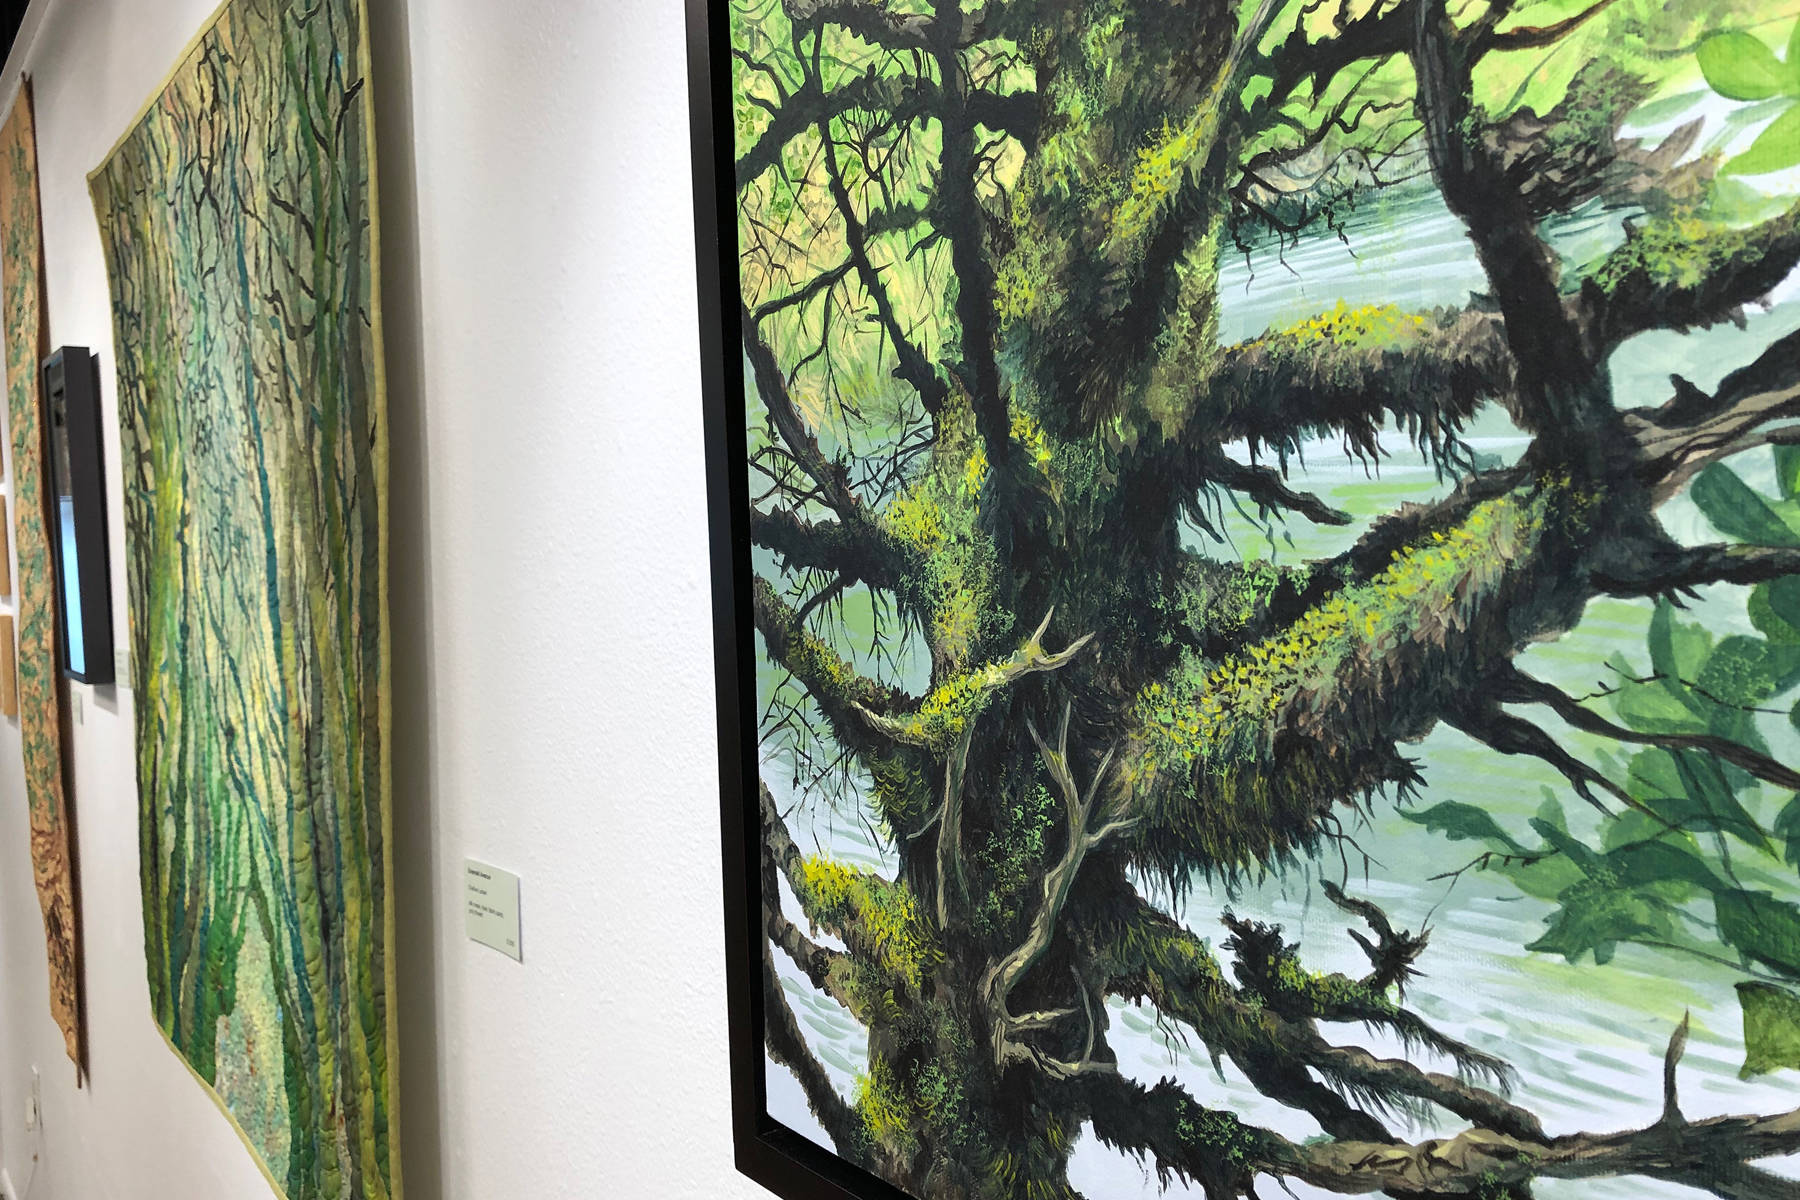 Larsen brings love of forest, trees to life in July exhibit